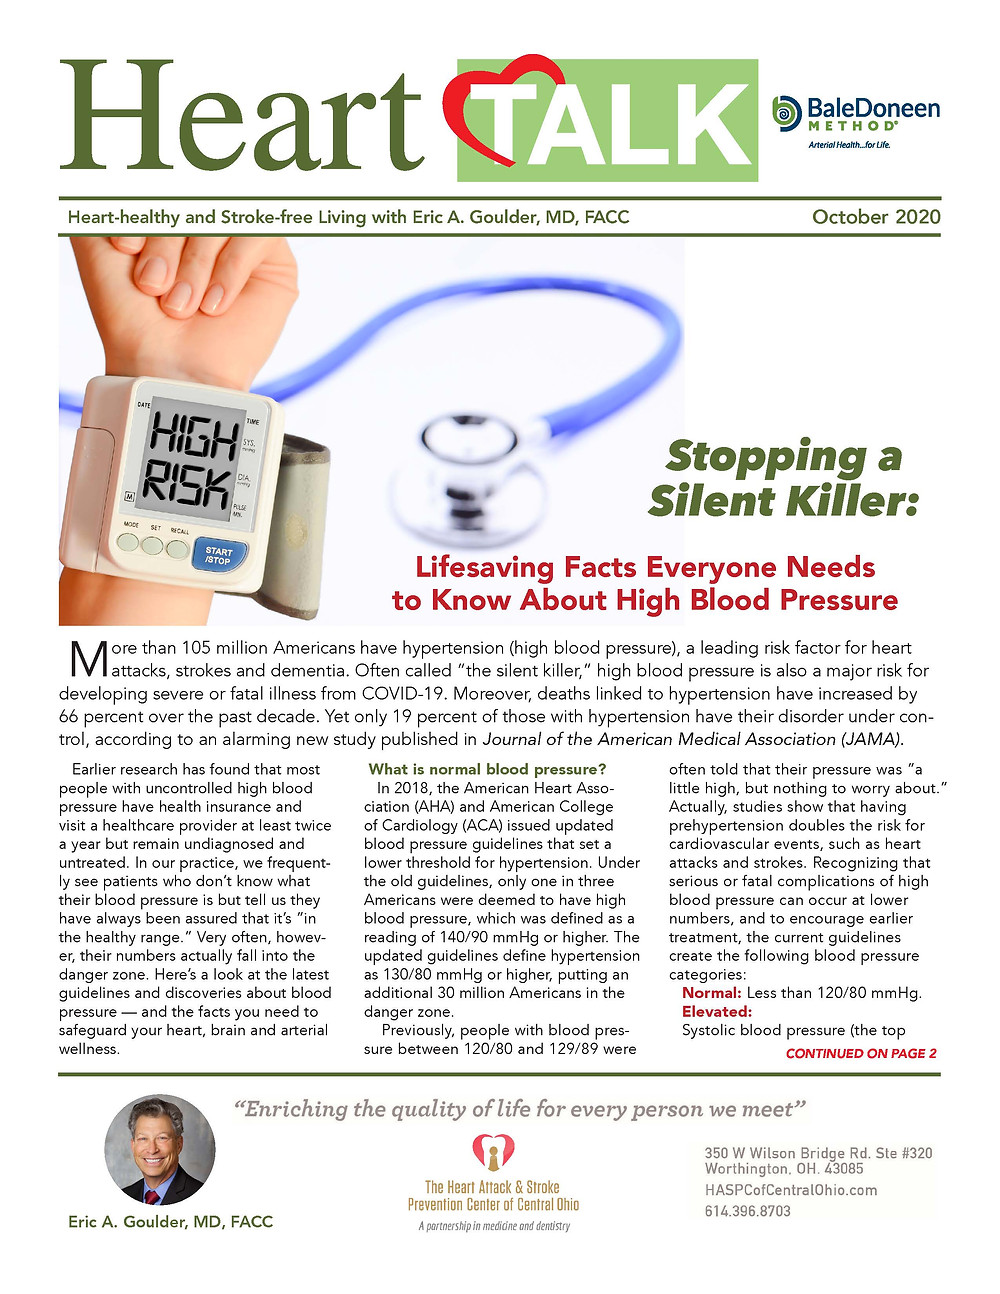 November 2020 Newsletter for the Heart Attack and Stroke Prevention Center of Central Ohio